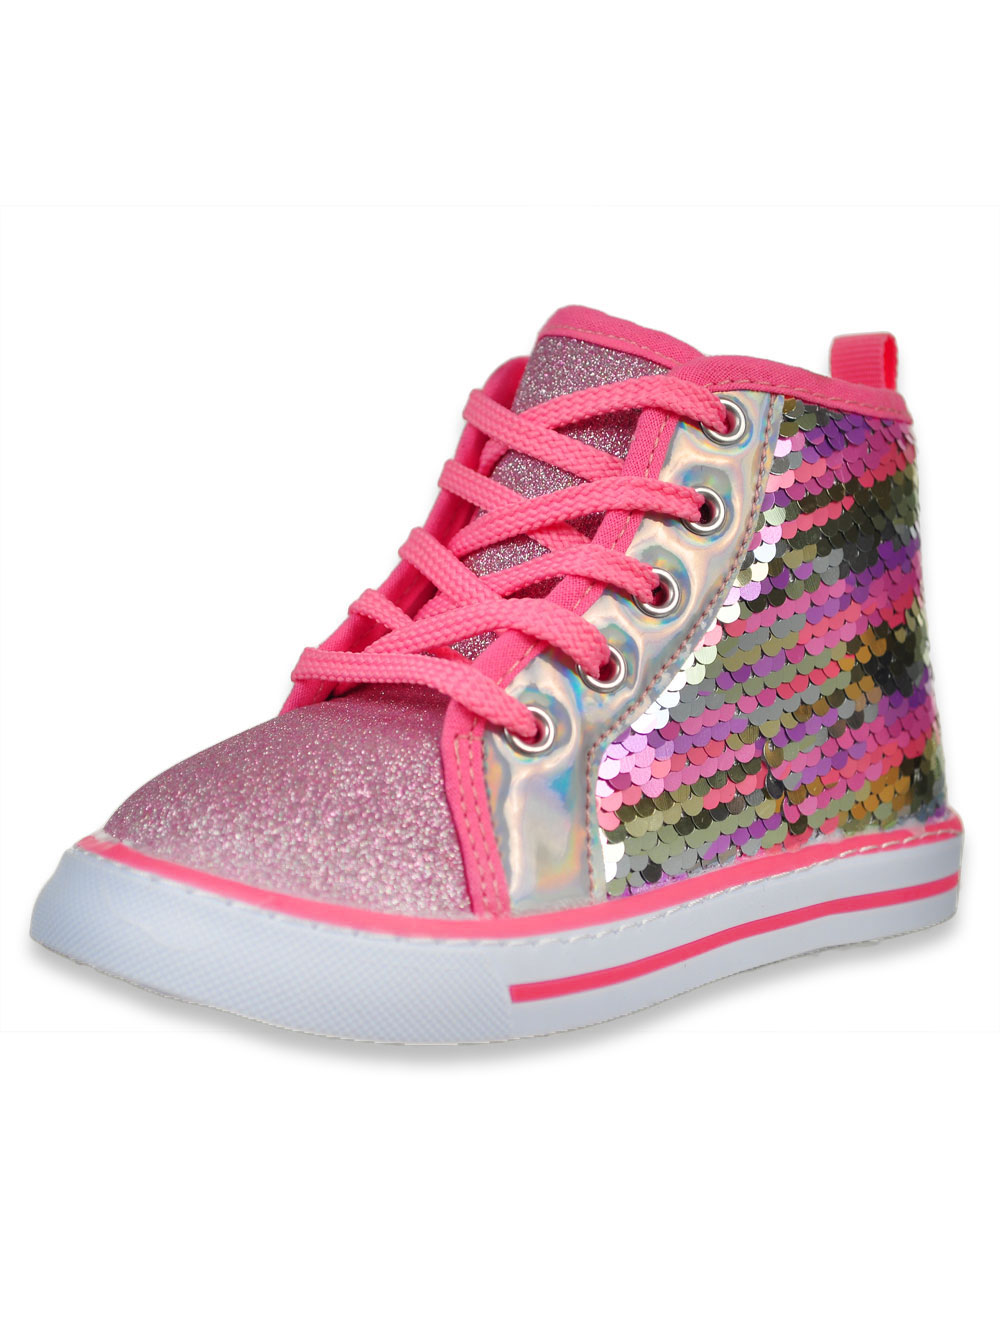 Laura Ashley Sneakers